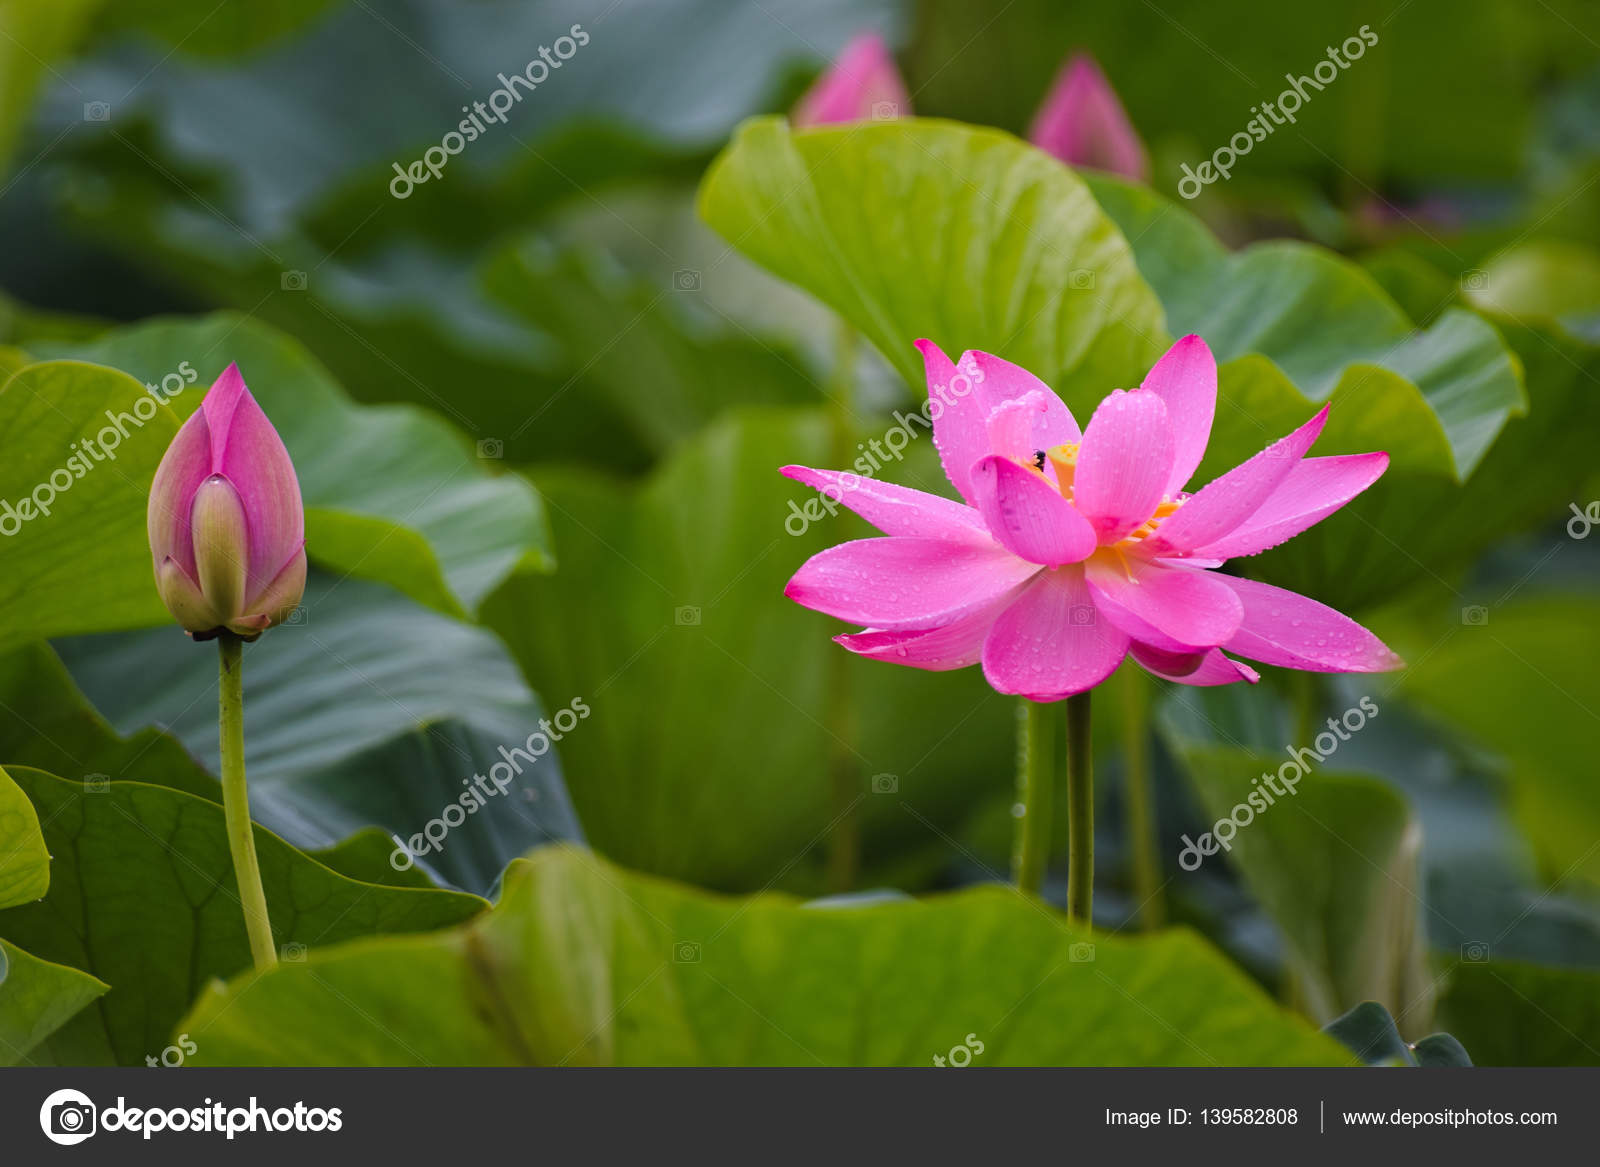 The Lotus Flower Blossomed From The Suns Heat Stock Photo